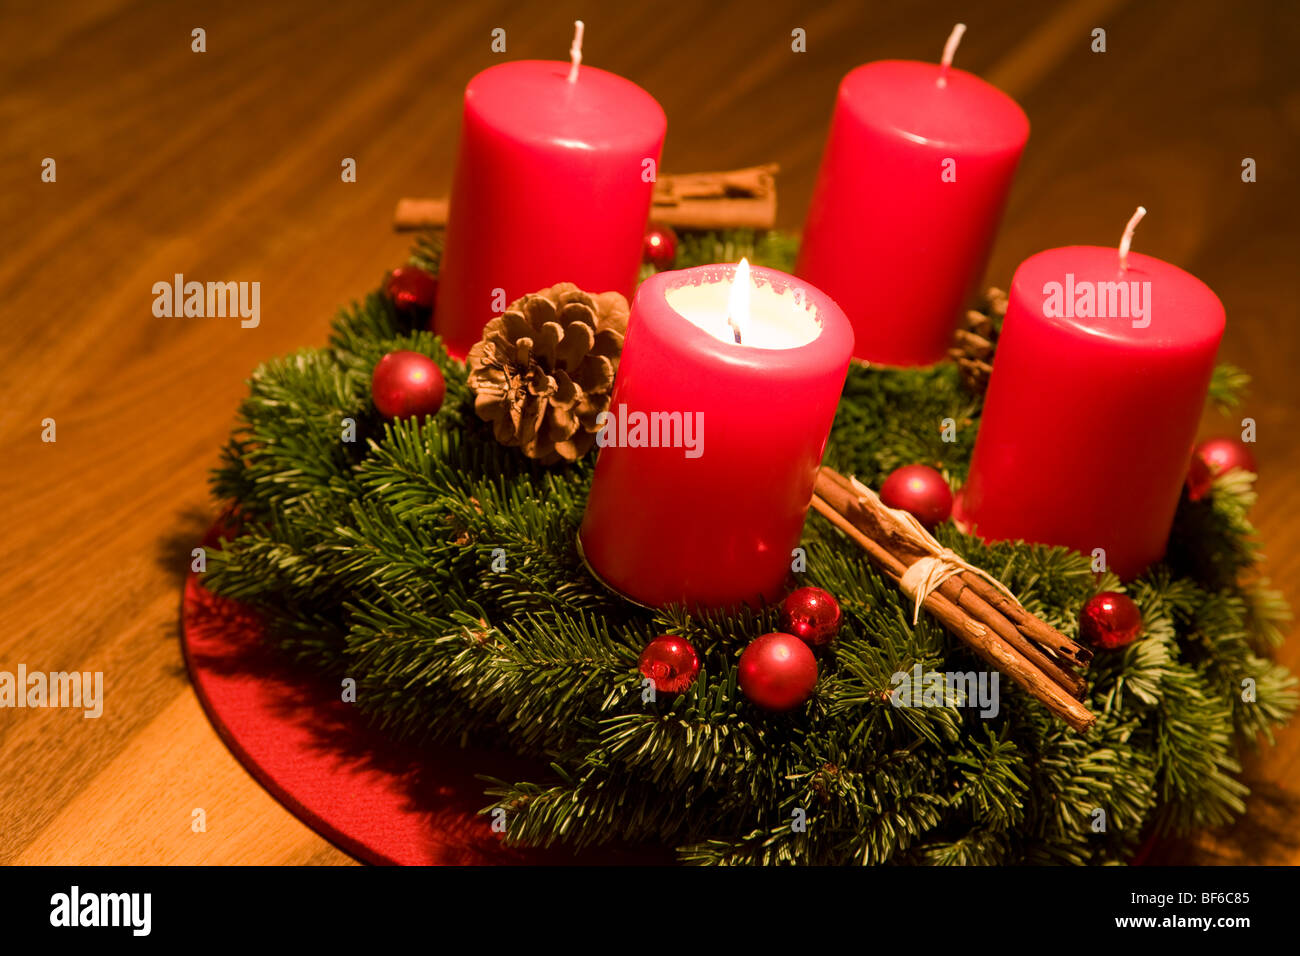 Advent Wreath First Sunday Of Advent Burning Candle Christmas